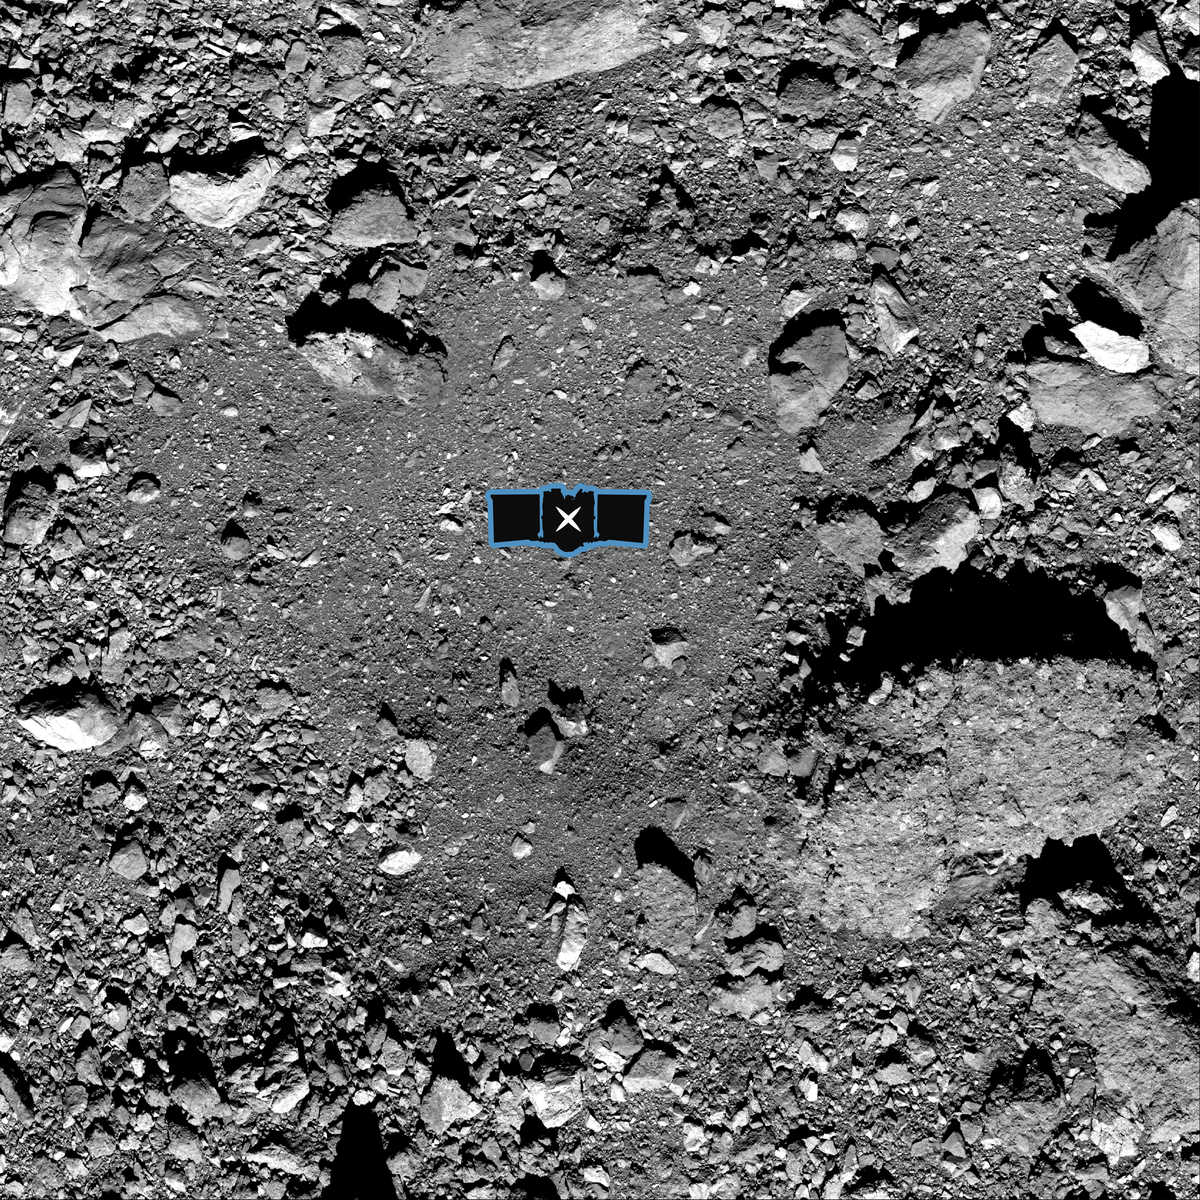 Proposed landing site on the Bennu asteroid